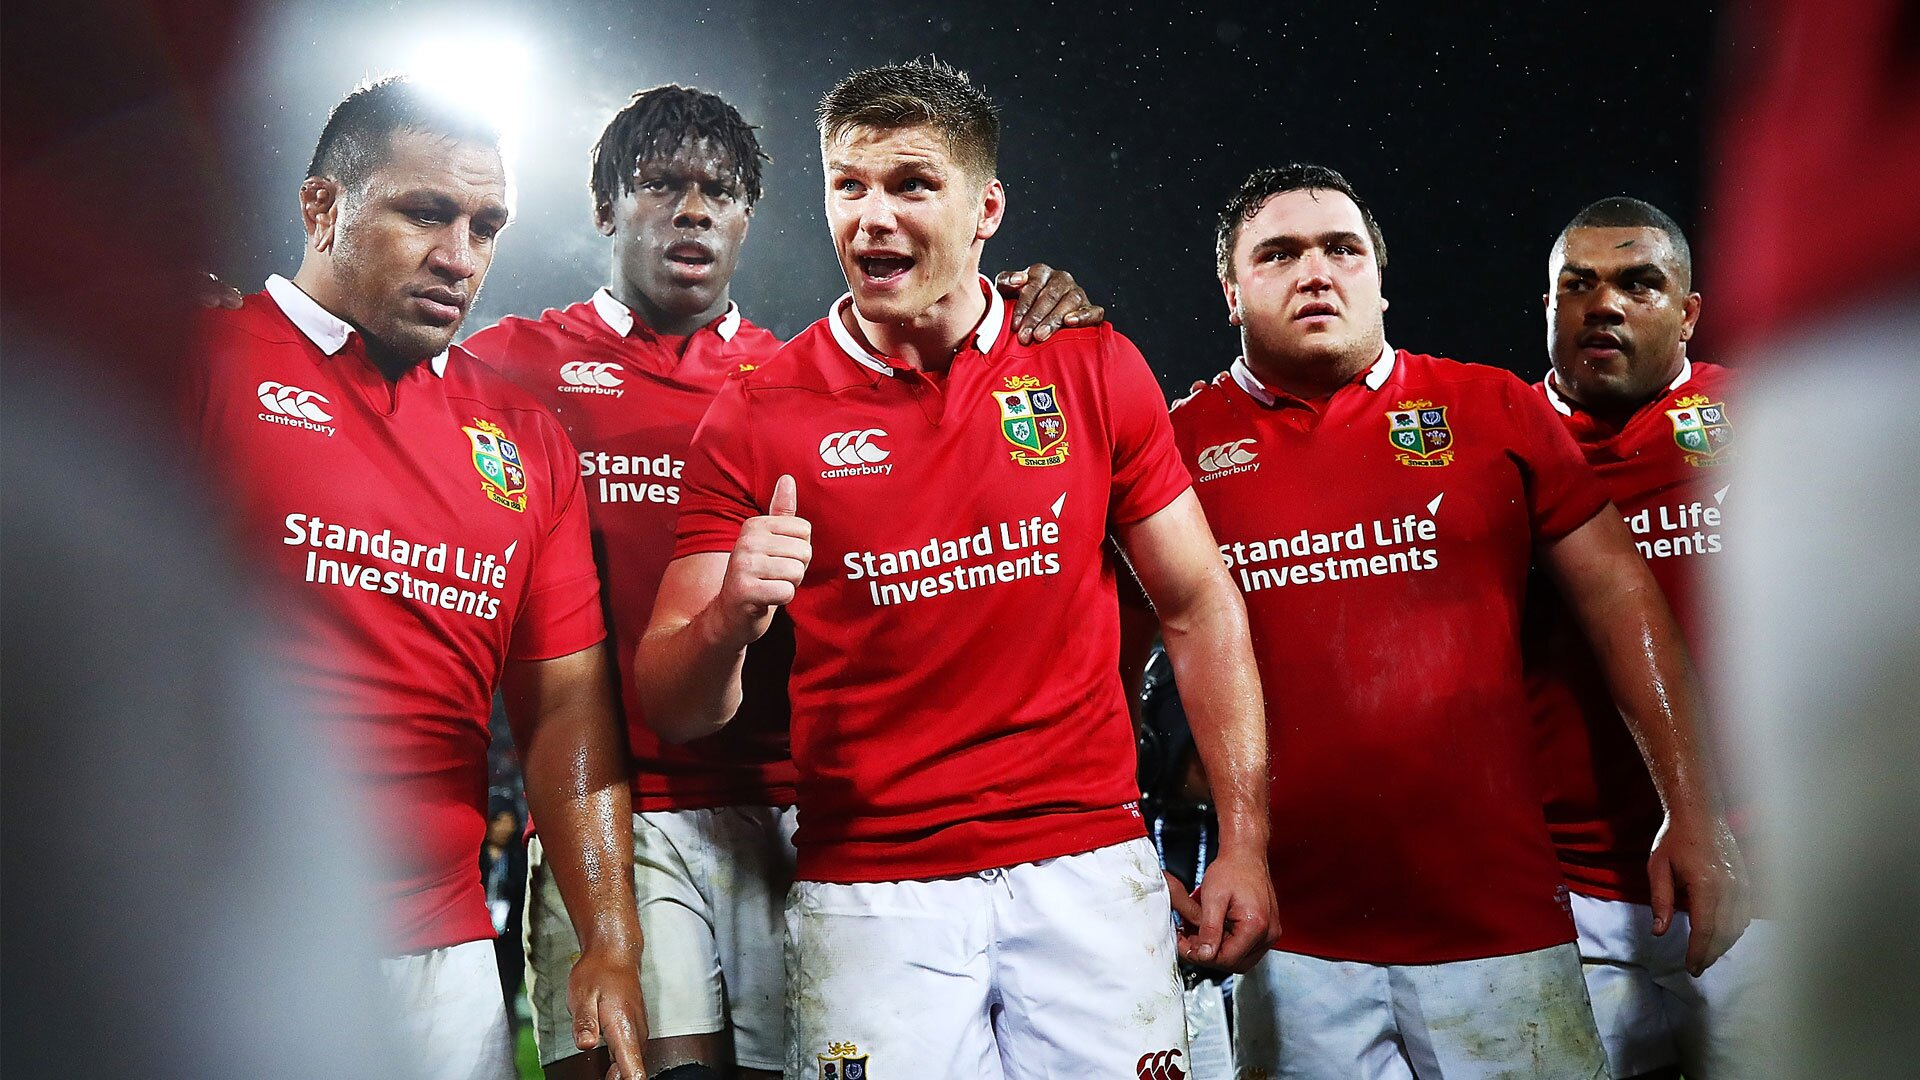 Online petition launched for 2022 Lions tour